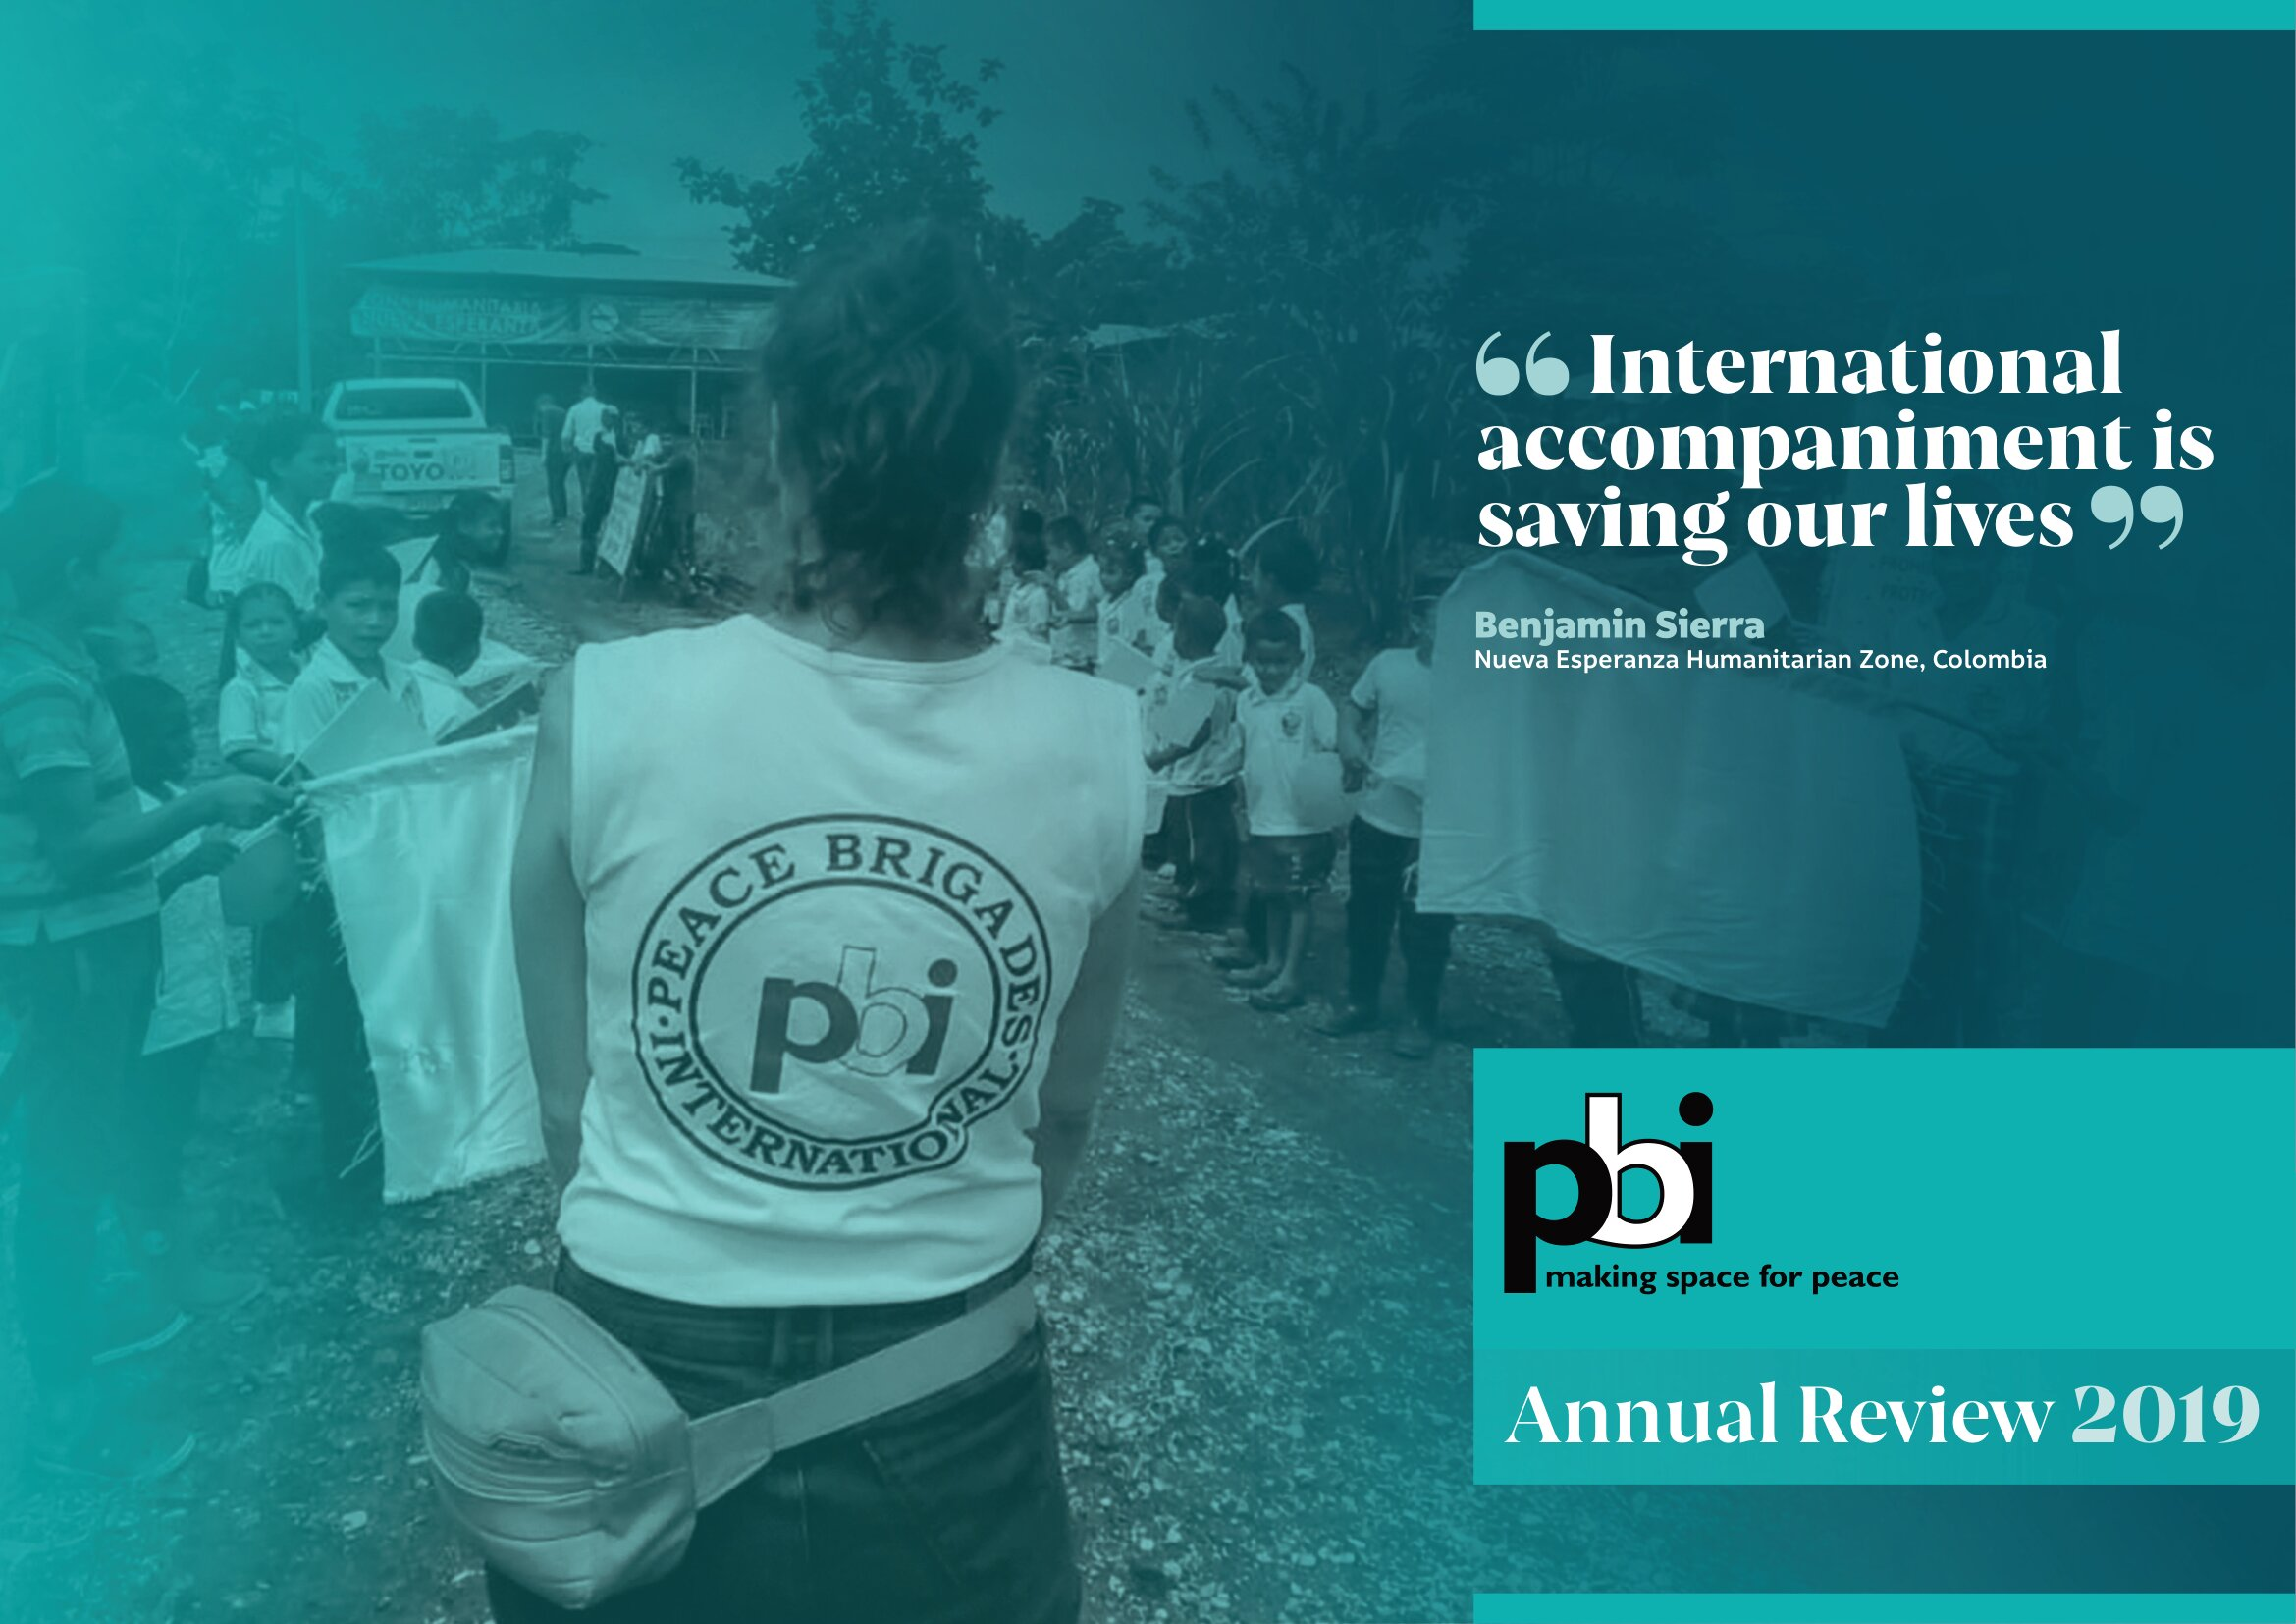 pbi - Annual Review